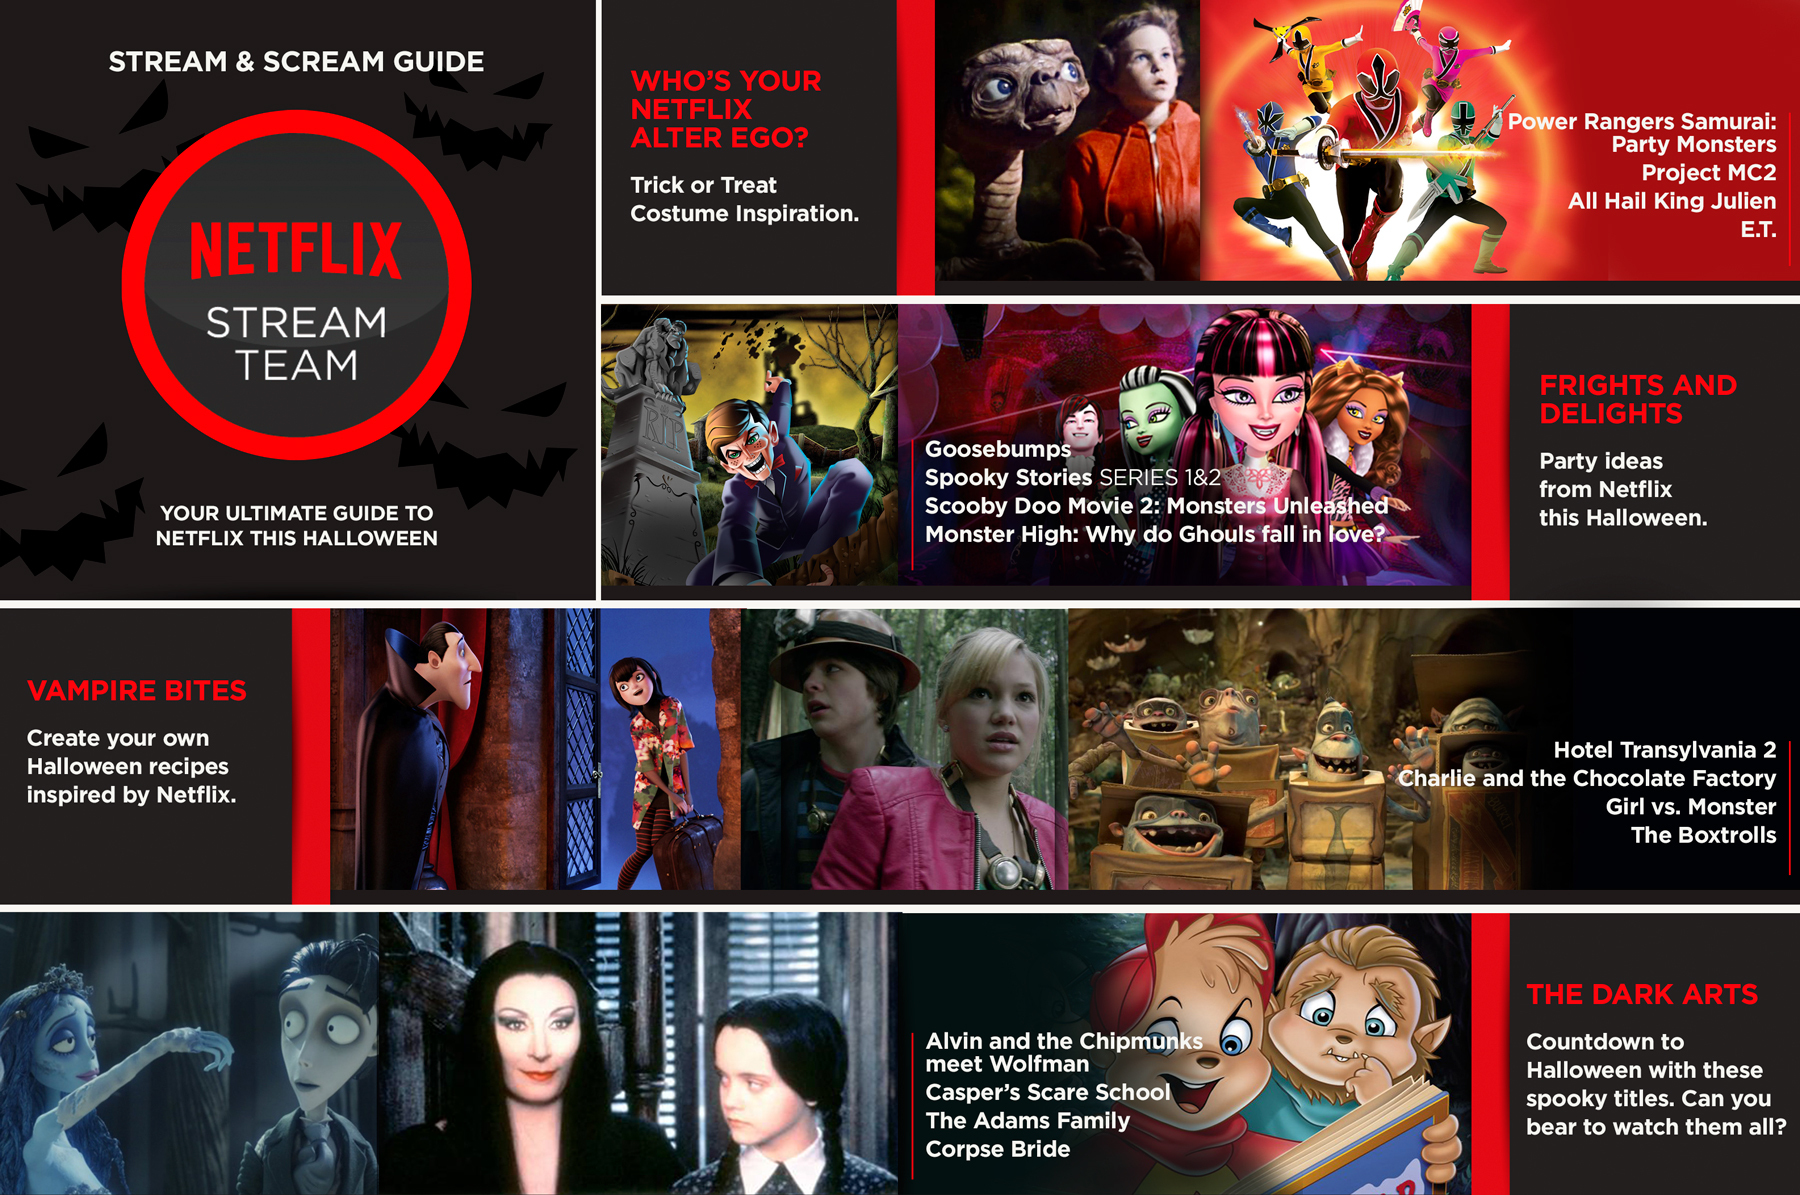 How to Host a Halloween Party with Netflix